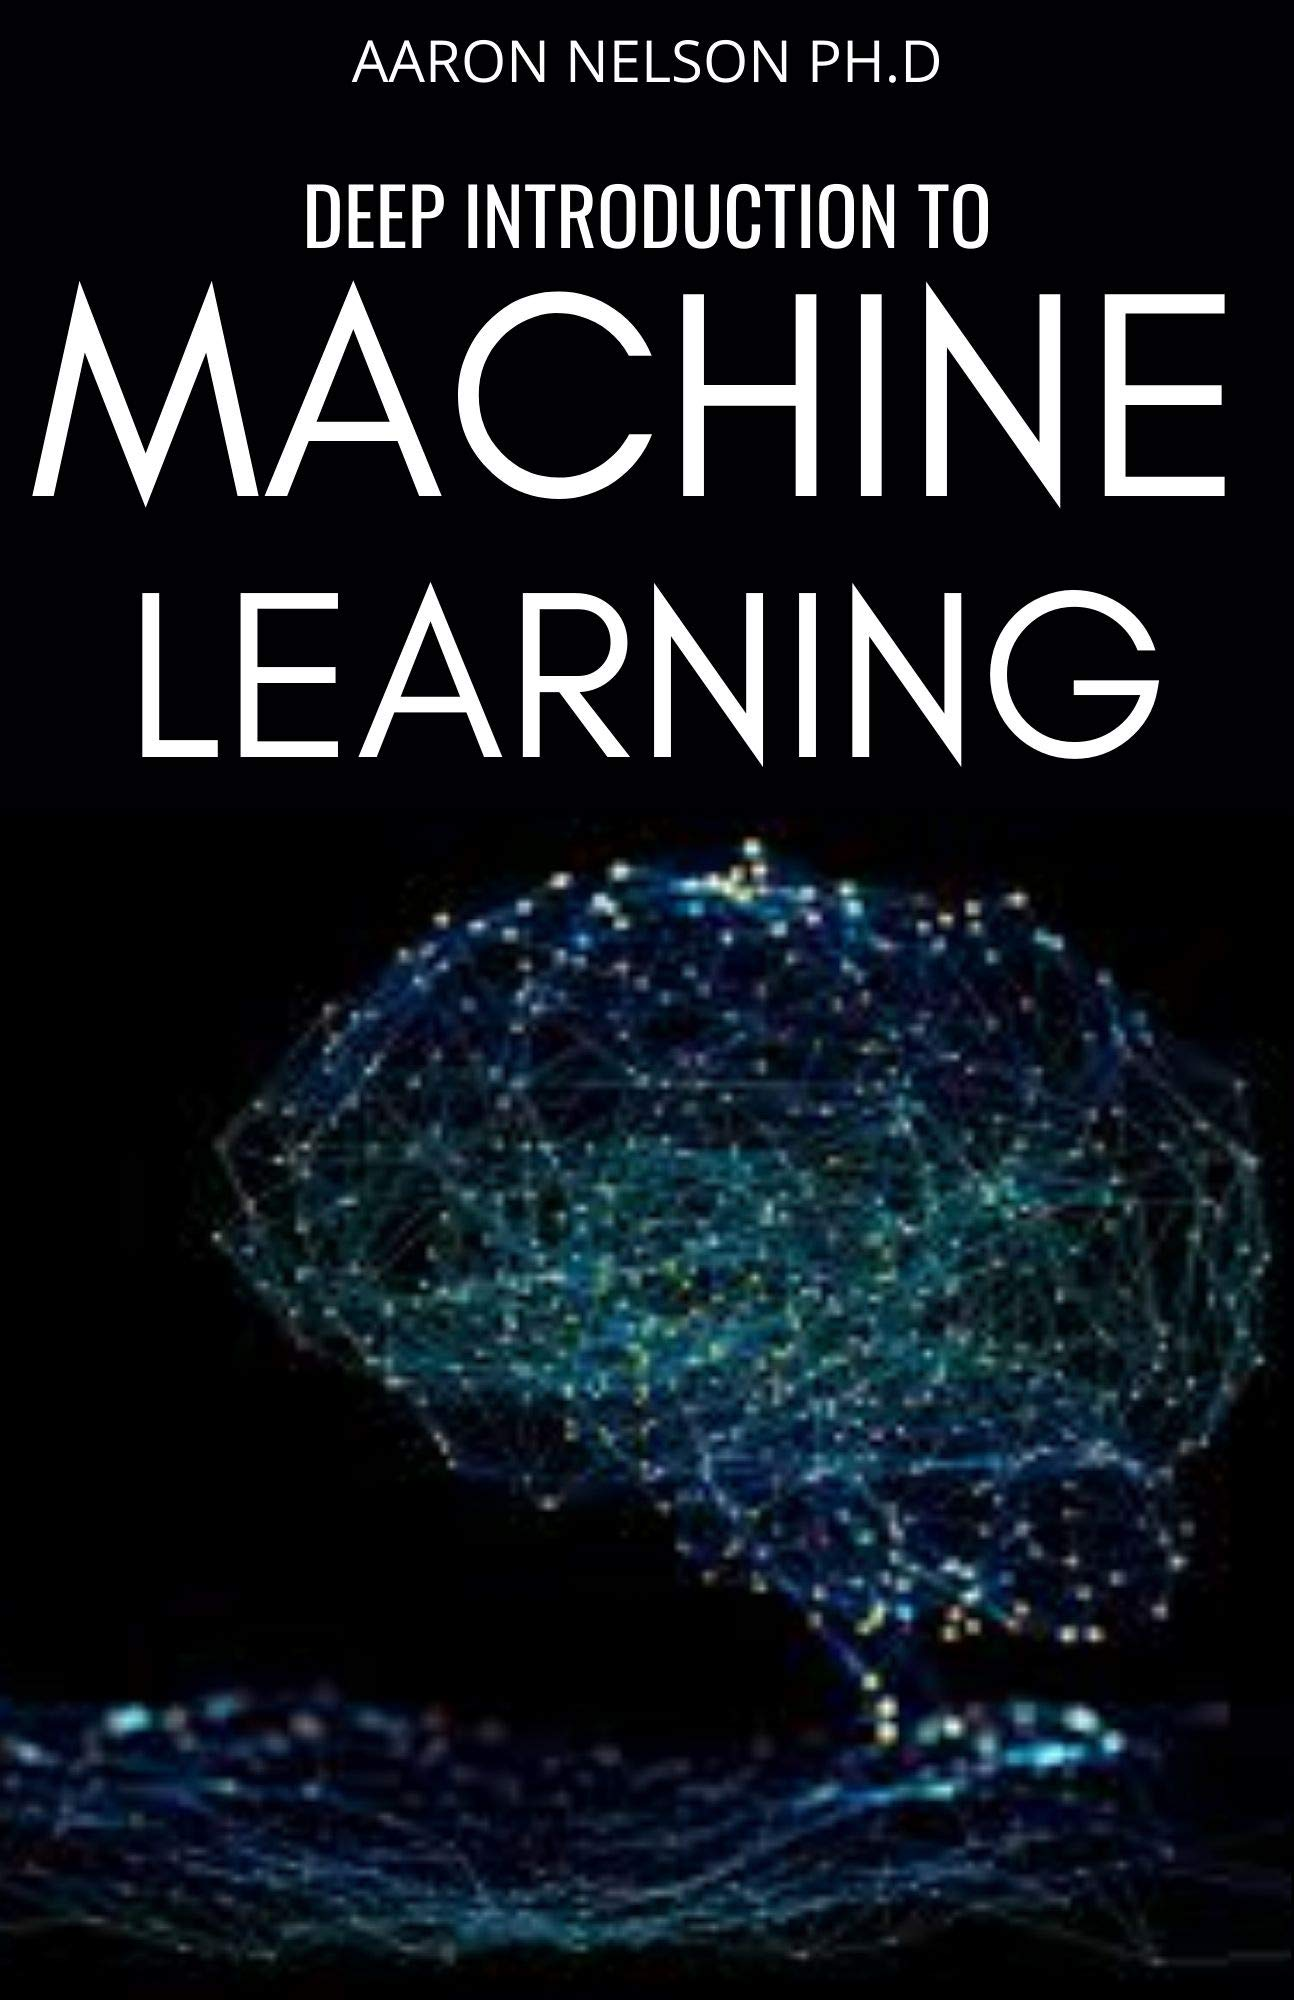 DEEP INTRODUCTION TO MACHINE LEARNING: BEGINNERS AND DUMMIES GUIDE FOR PROGRAMMERS TO MASTER ARTIFICIAL INTELLIGENCE, DATA SCIENCE WITH PYTHON, NEURAL NETWORKS.